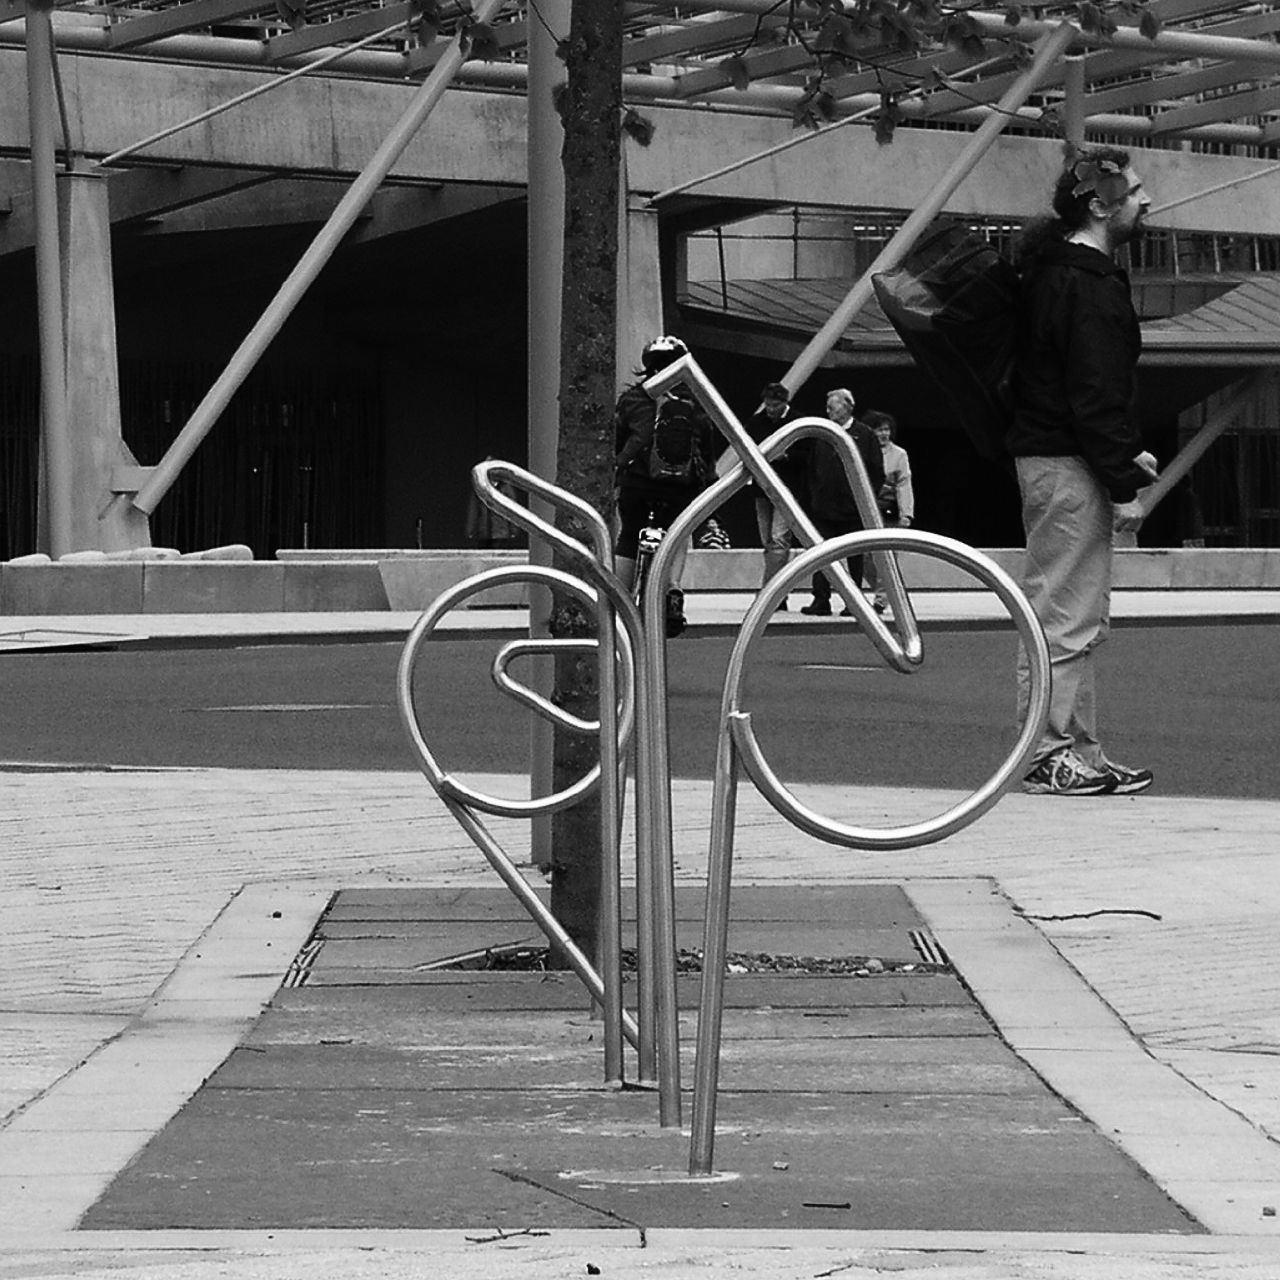 Google Image Result for http://upload.wikimedia.org/wikipedia/commons/3/3b/Scottish_Parliament_bike_racks.jpg